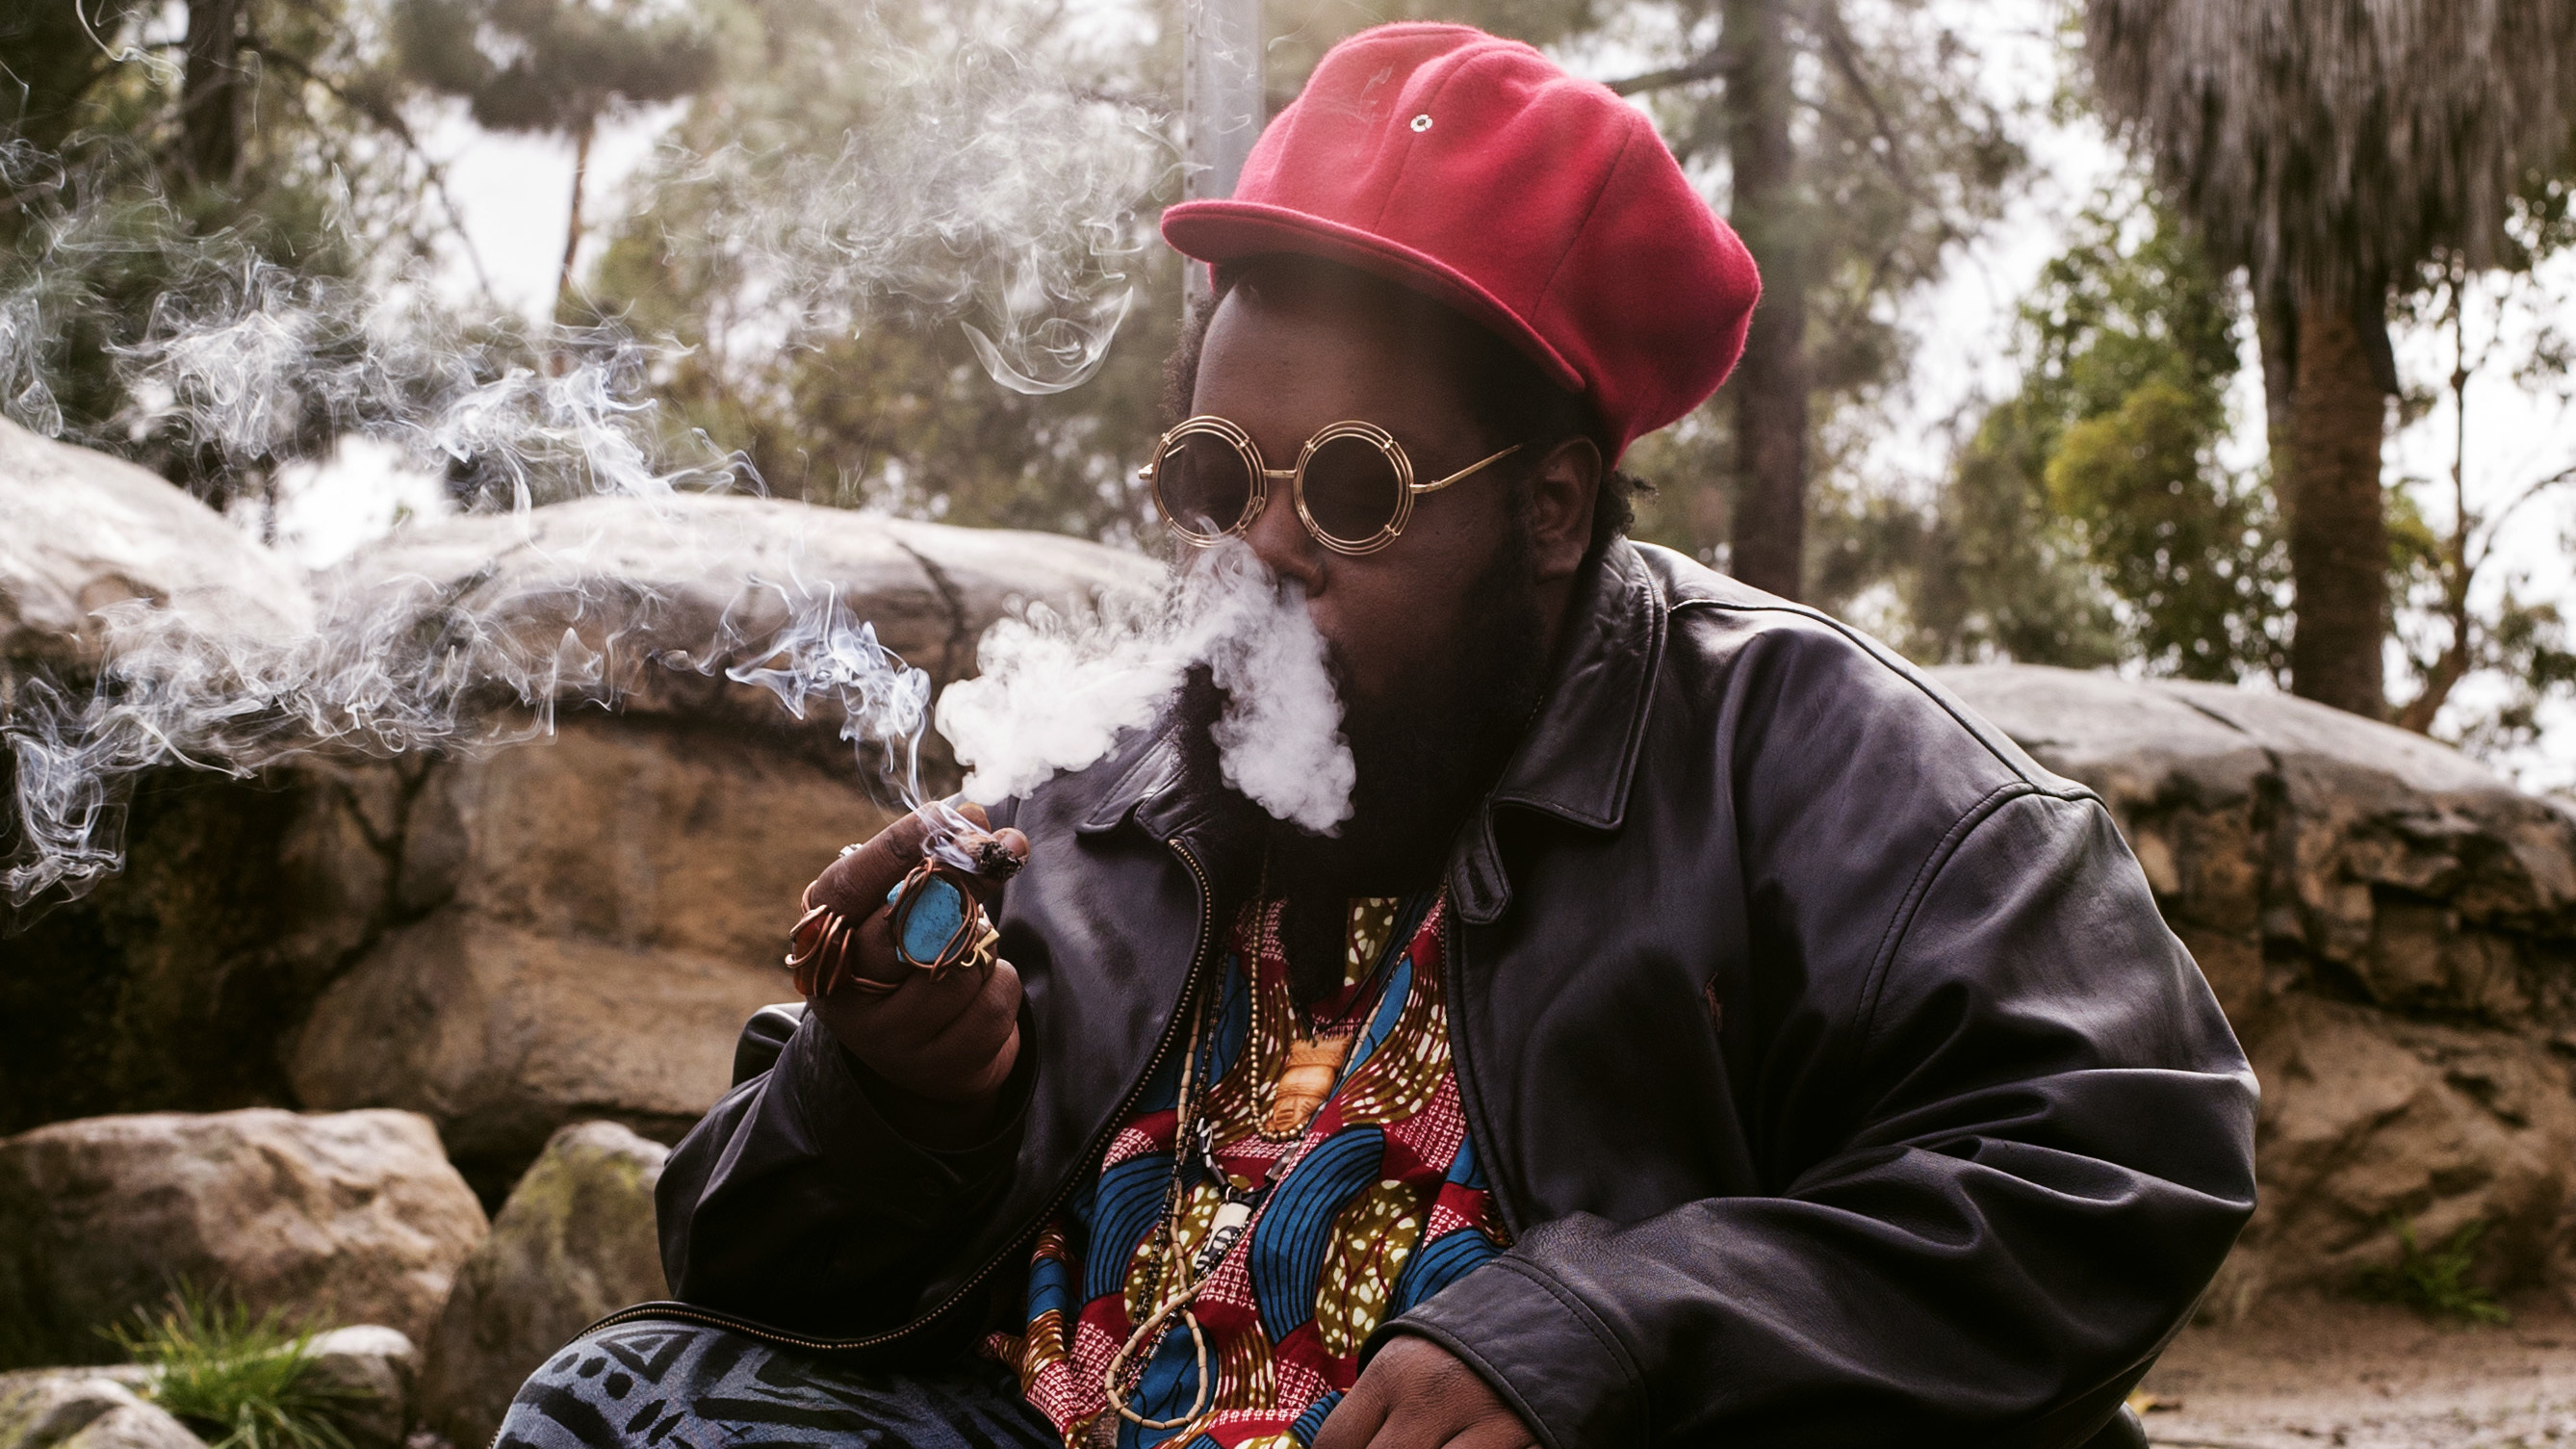 Spacebase Was The Place: The Life Of Ras G, Blunted Saint Of The L.A. Beat Scene